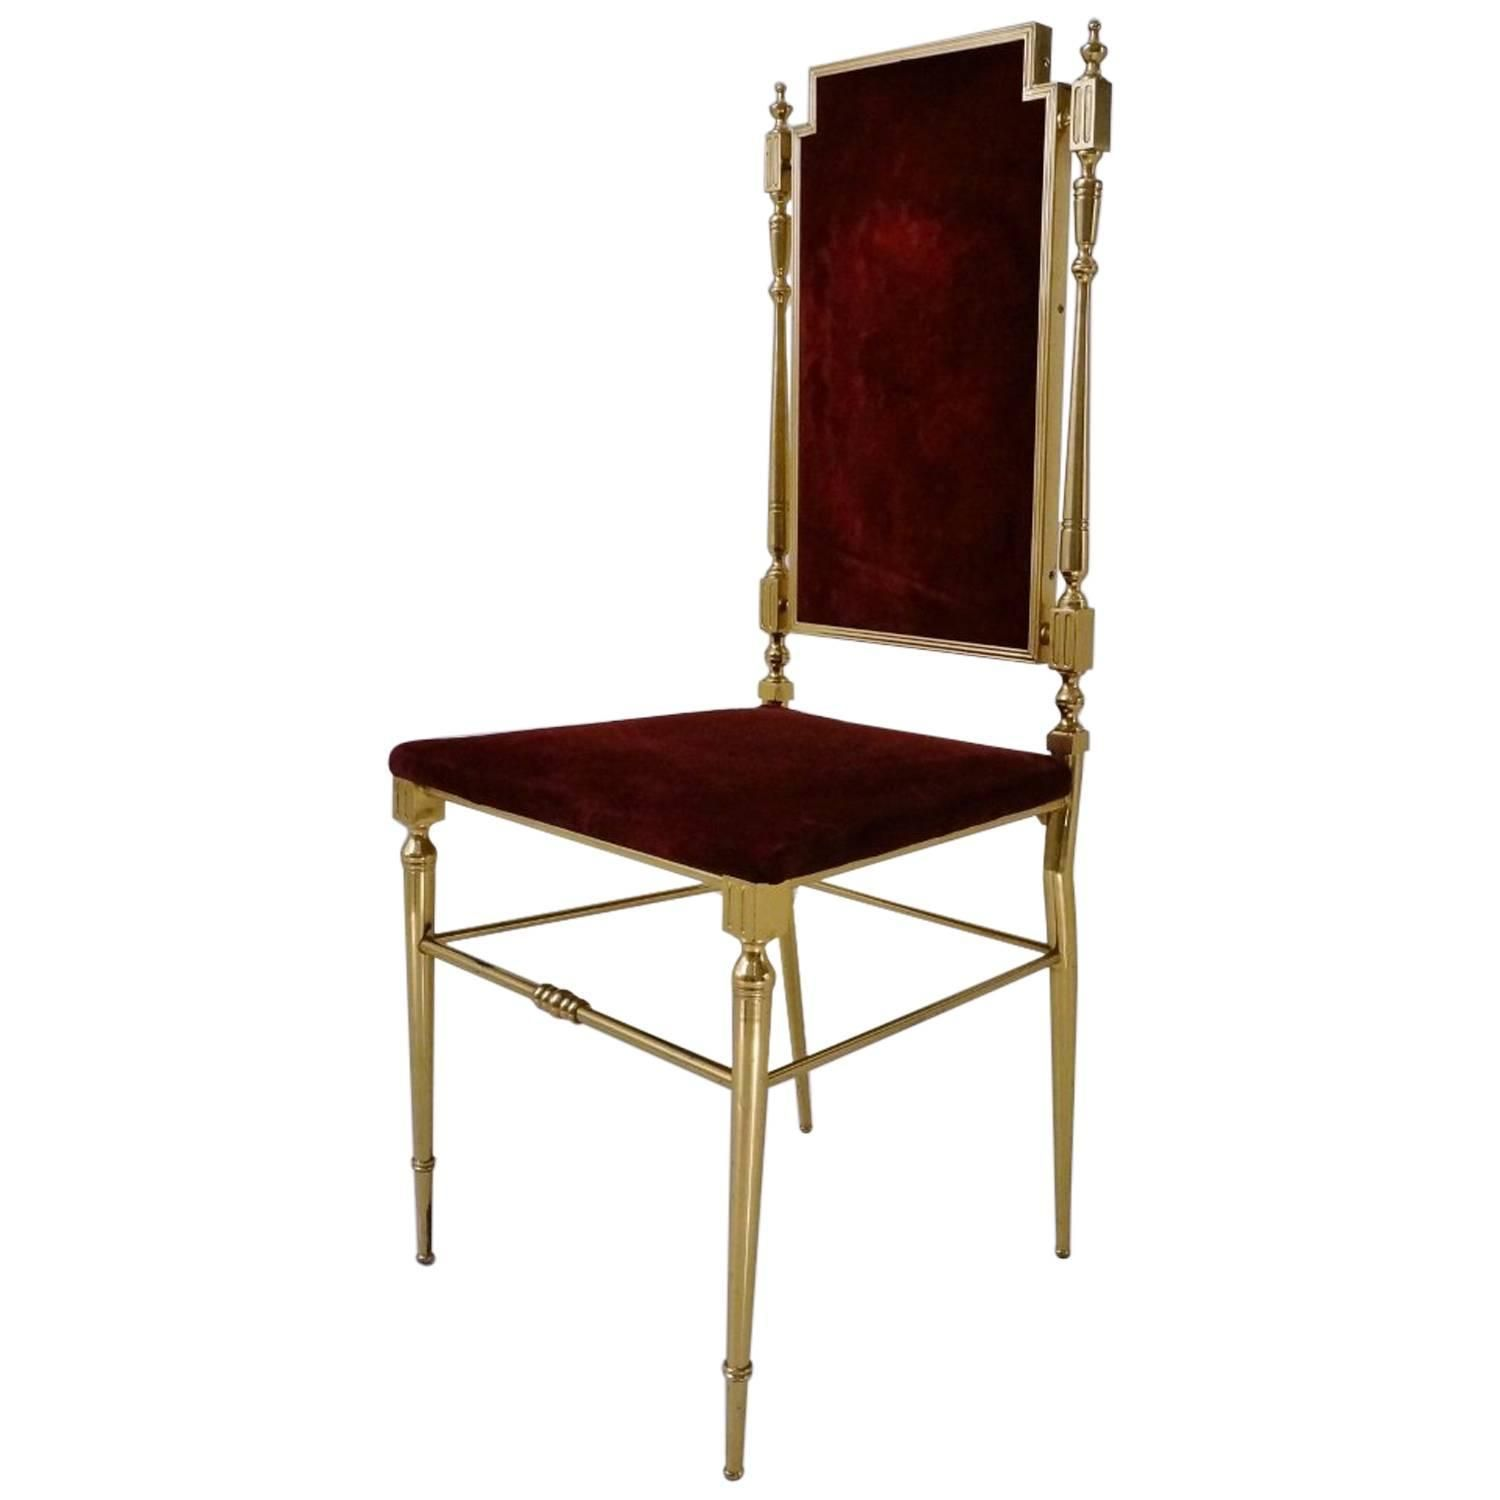 Neoclassical Brass Chair French circa 1950s